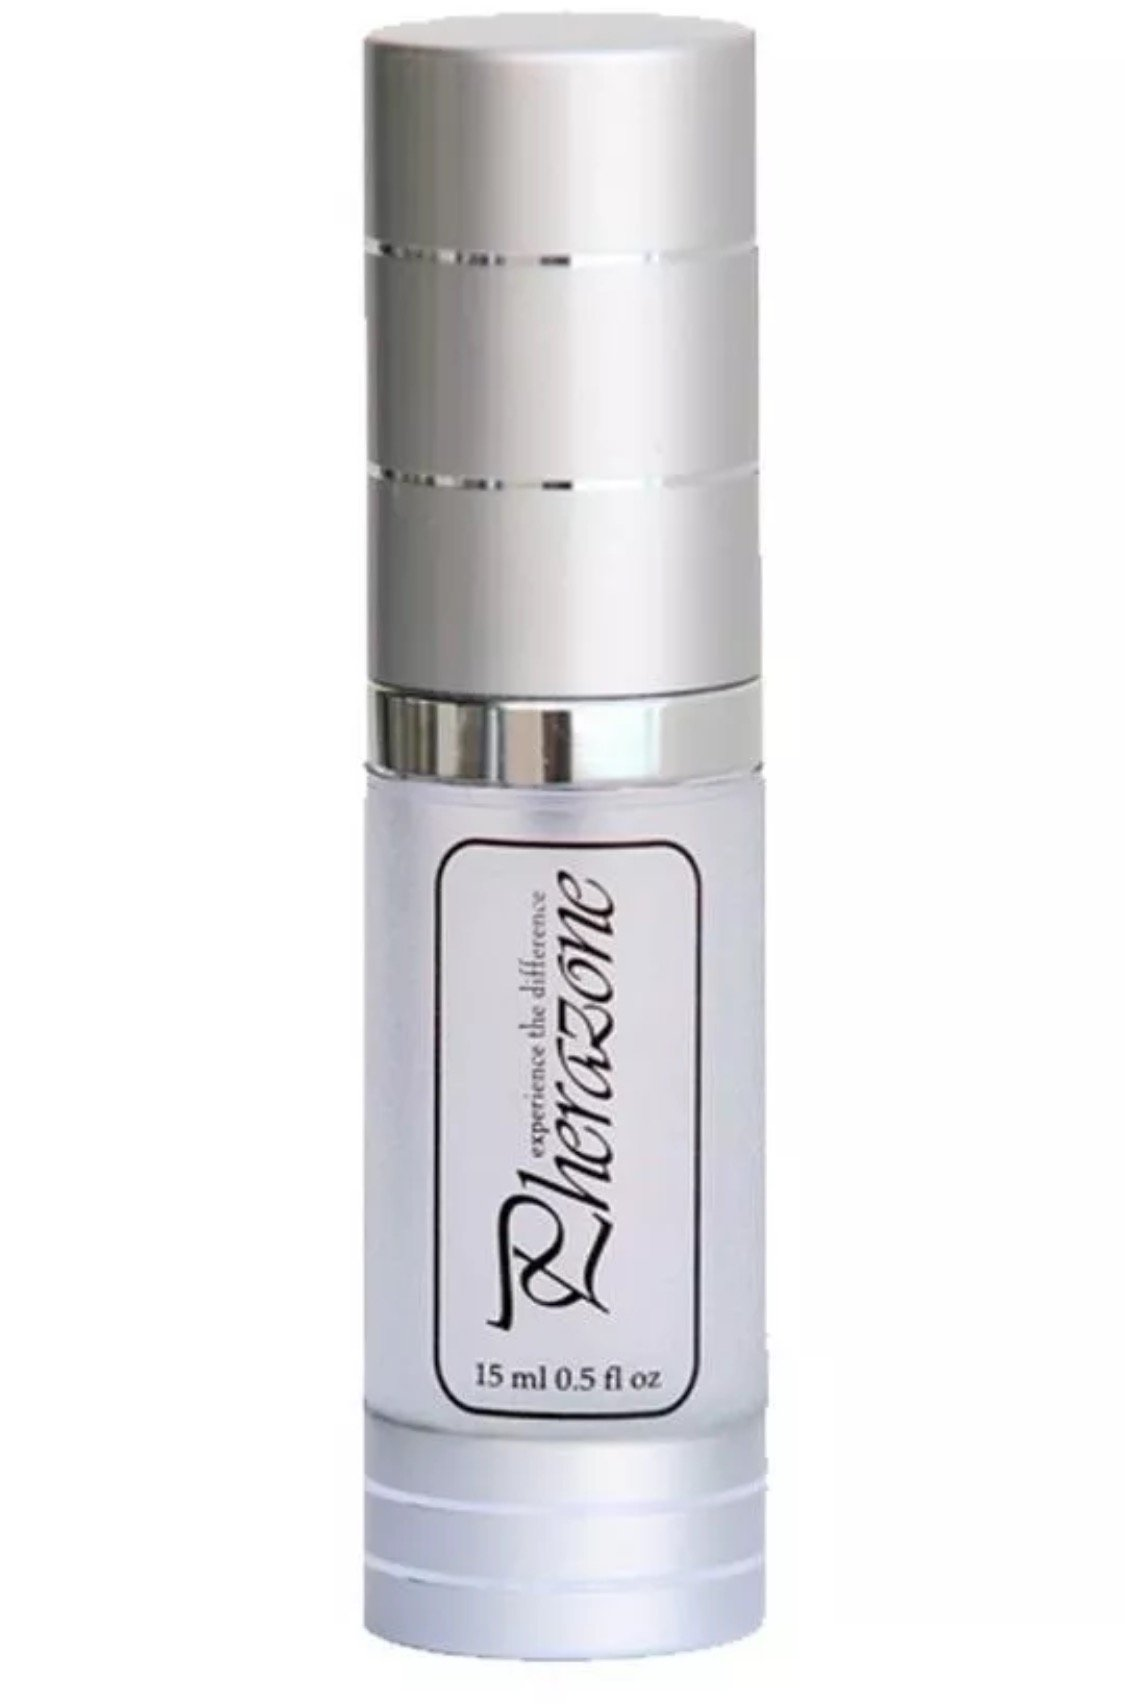 PHERAZONE SUPER CONCENTRATED 72 mg per ounce Pheromones Cologne for Men to Attract Women Instantly SCENTED by Pherazone